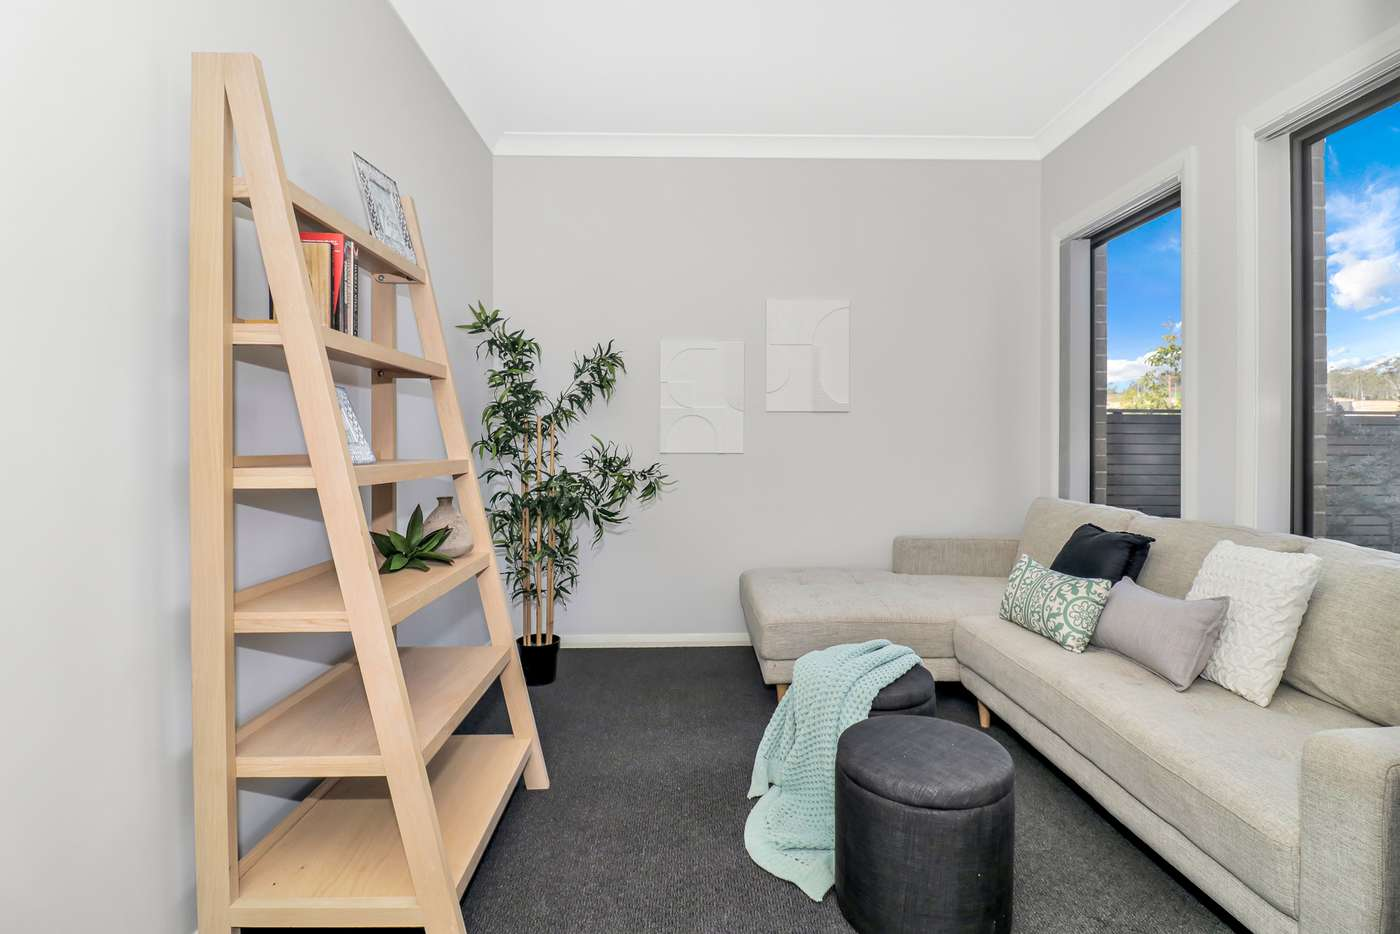 Sixth view of Homely house listing, 73 Fanflower Avenue, Leppington NSW 2179